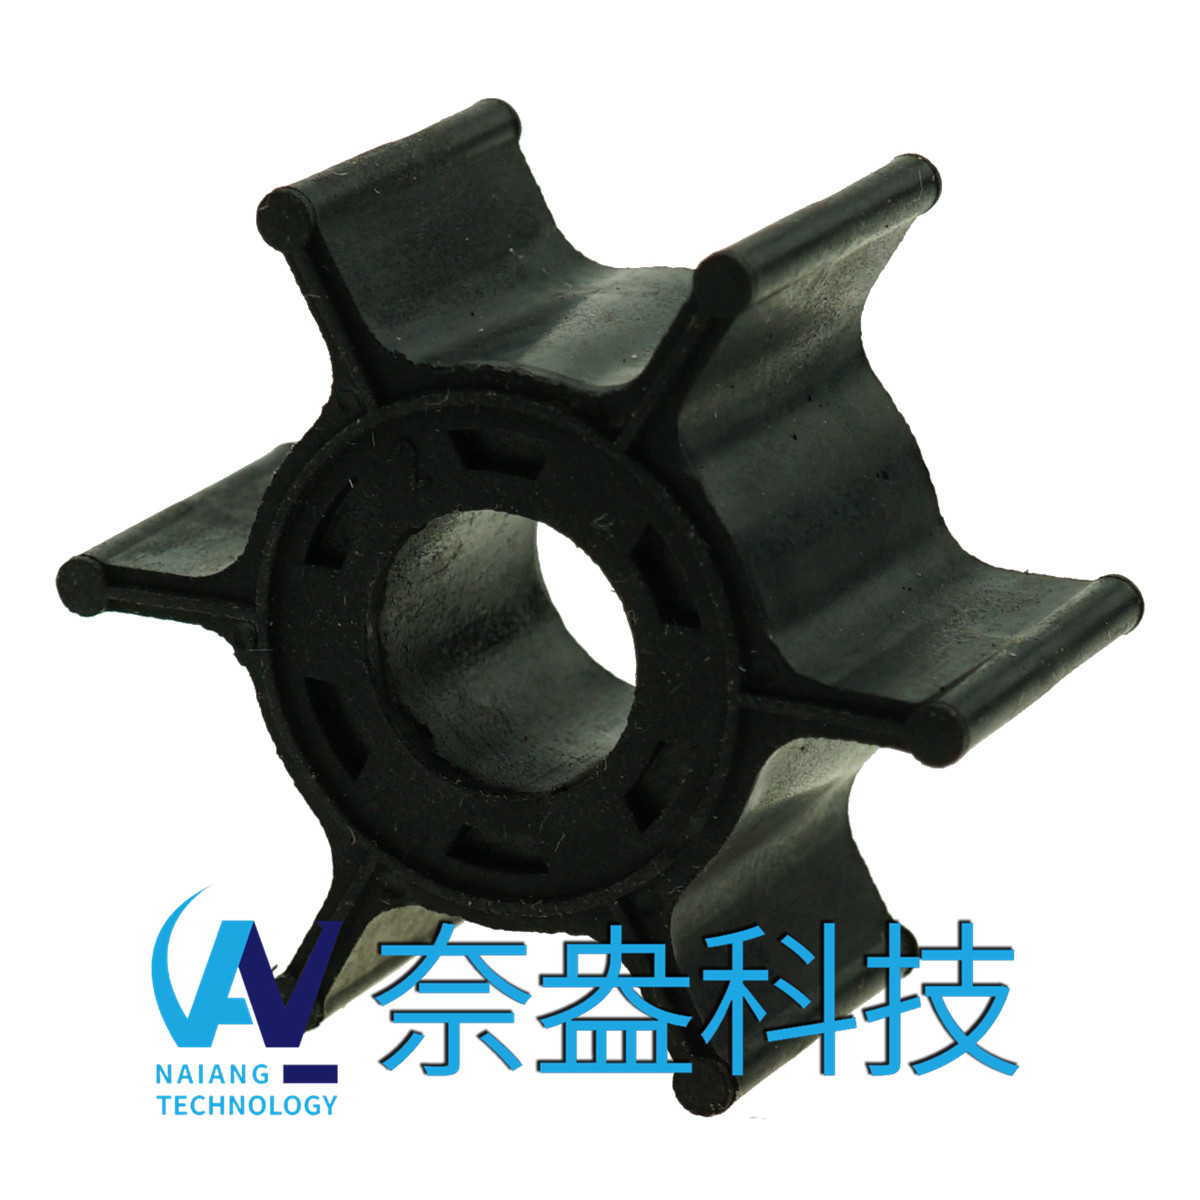 水星舷外機橡膠葉輪6hp Mercury Impeller 47-11590M